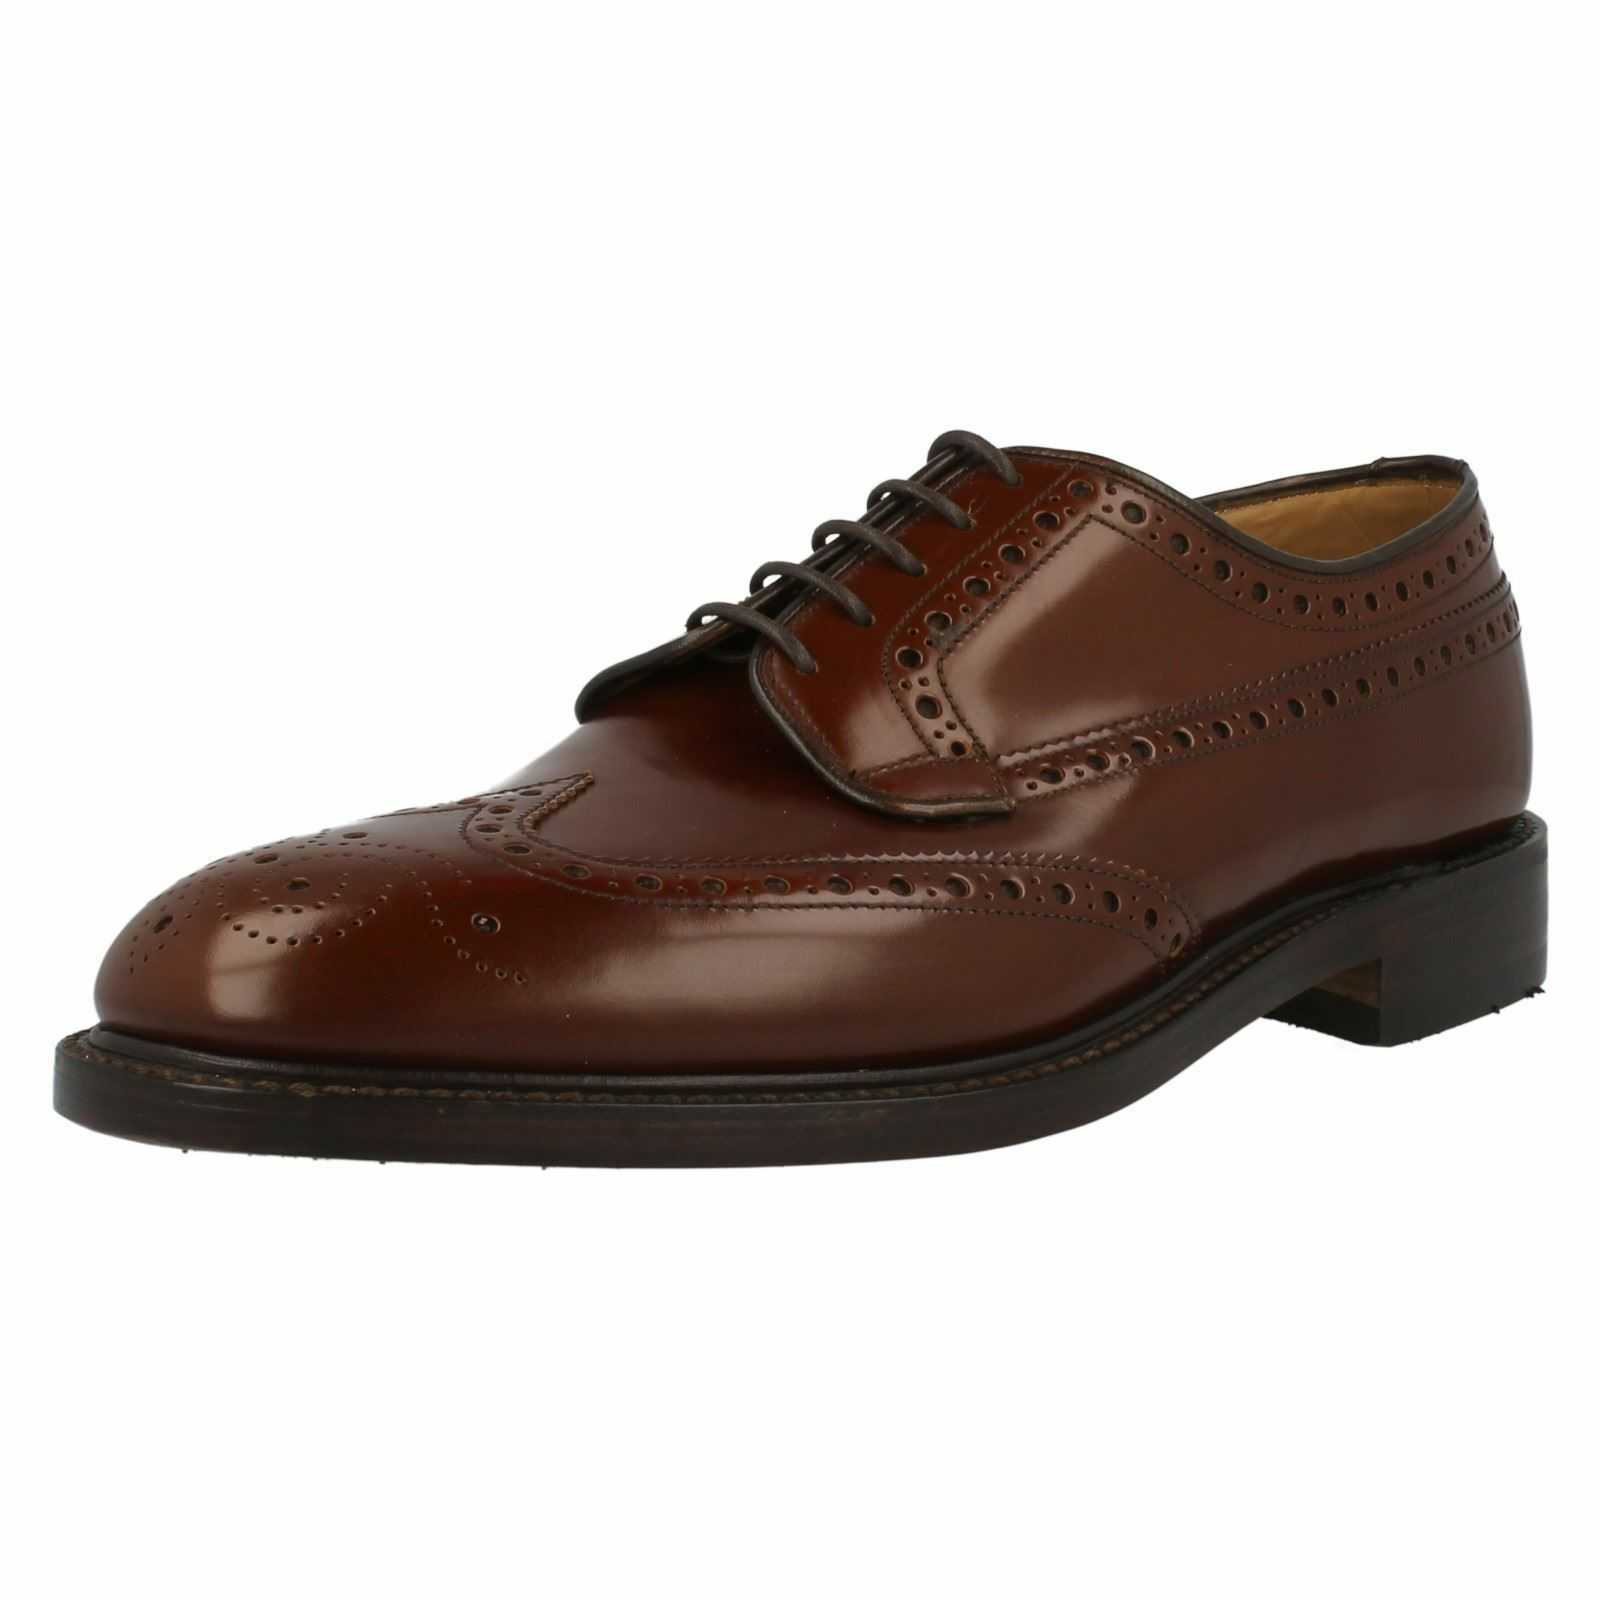 MENS LOAKE BRAEMAR TAN POLISHED LEATHER LACE UP BROGUE SHOES F FITTING